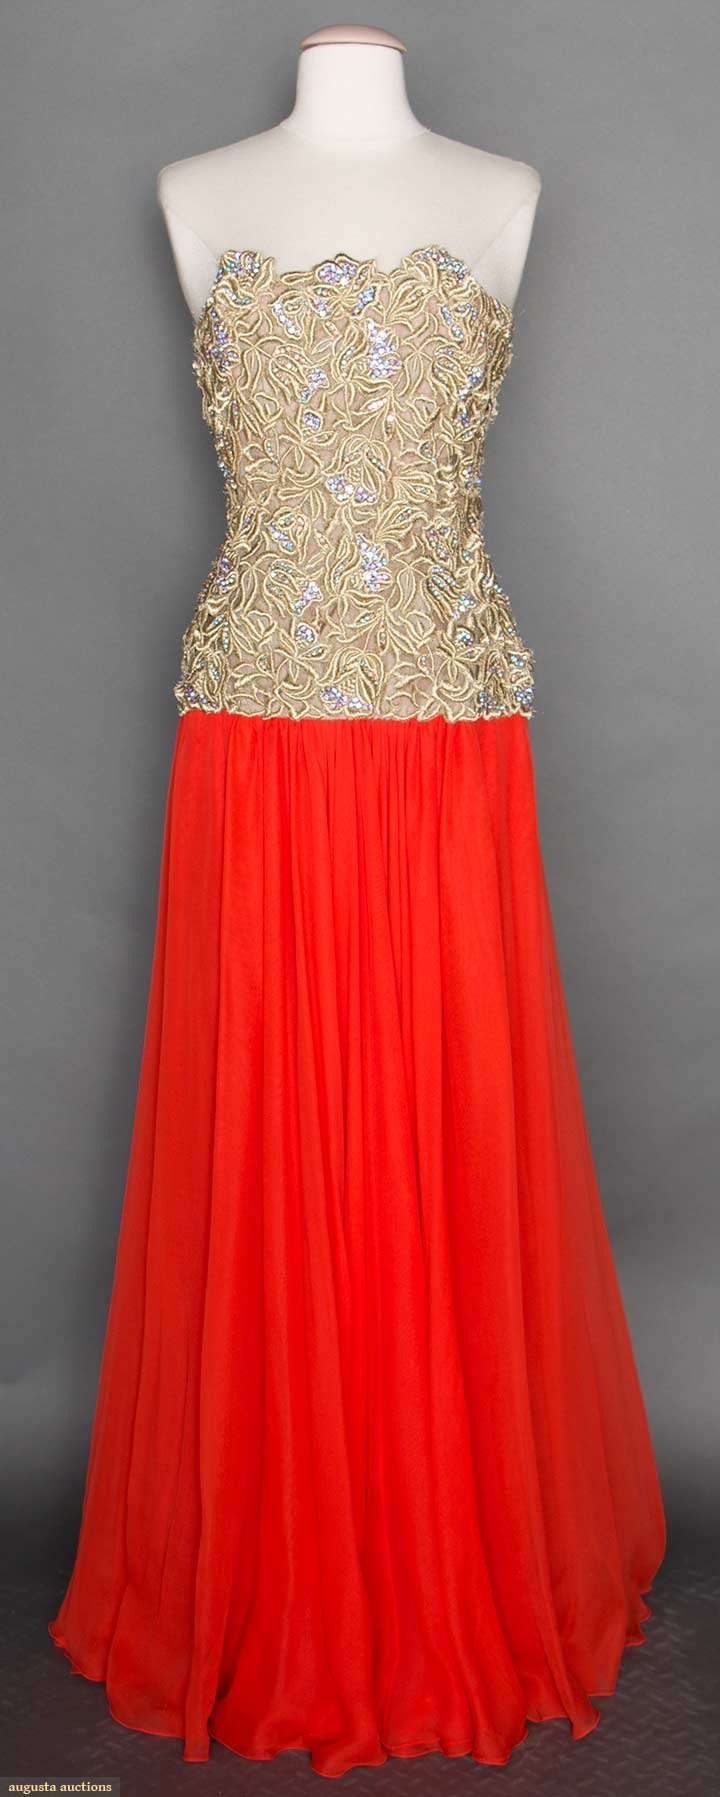 Gold Lace & Red Silk Ball Gown, 1950-1960, Augusta Auctions, April 8, 2015 NYC, Lot 242